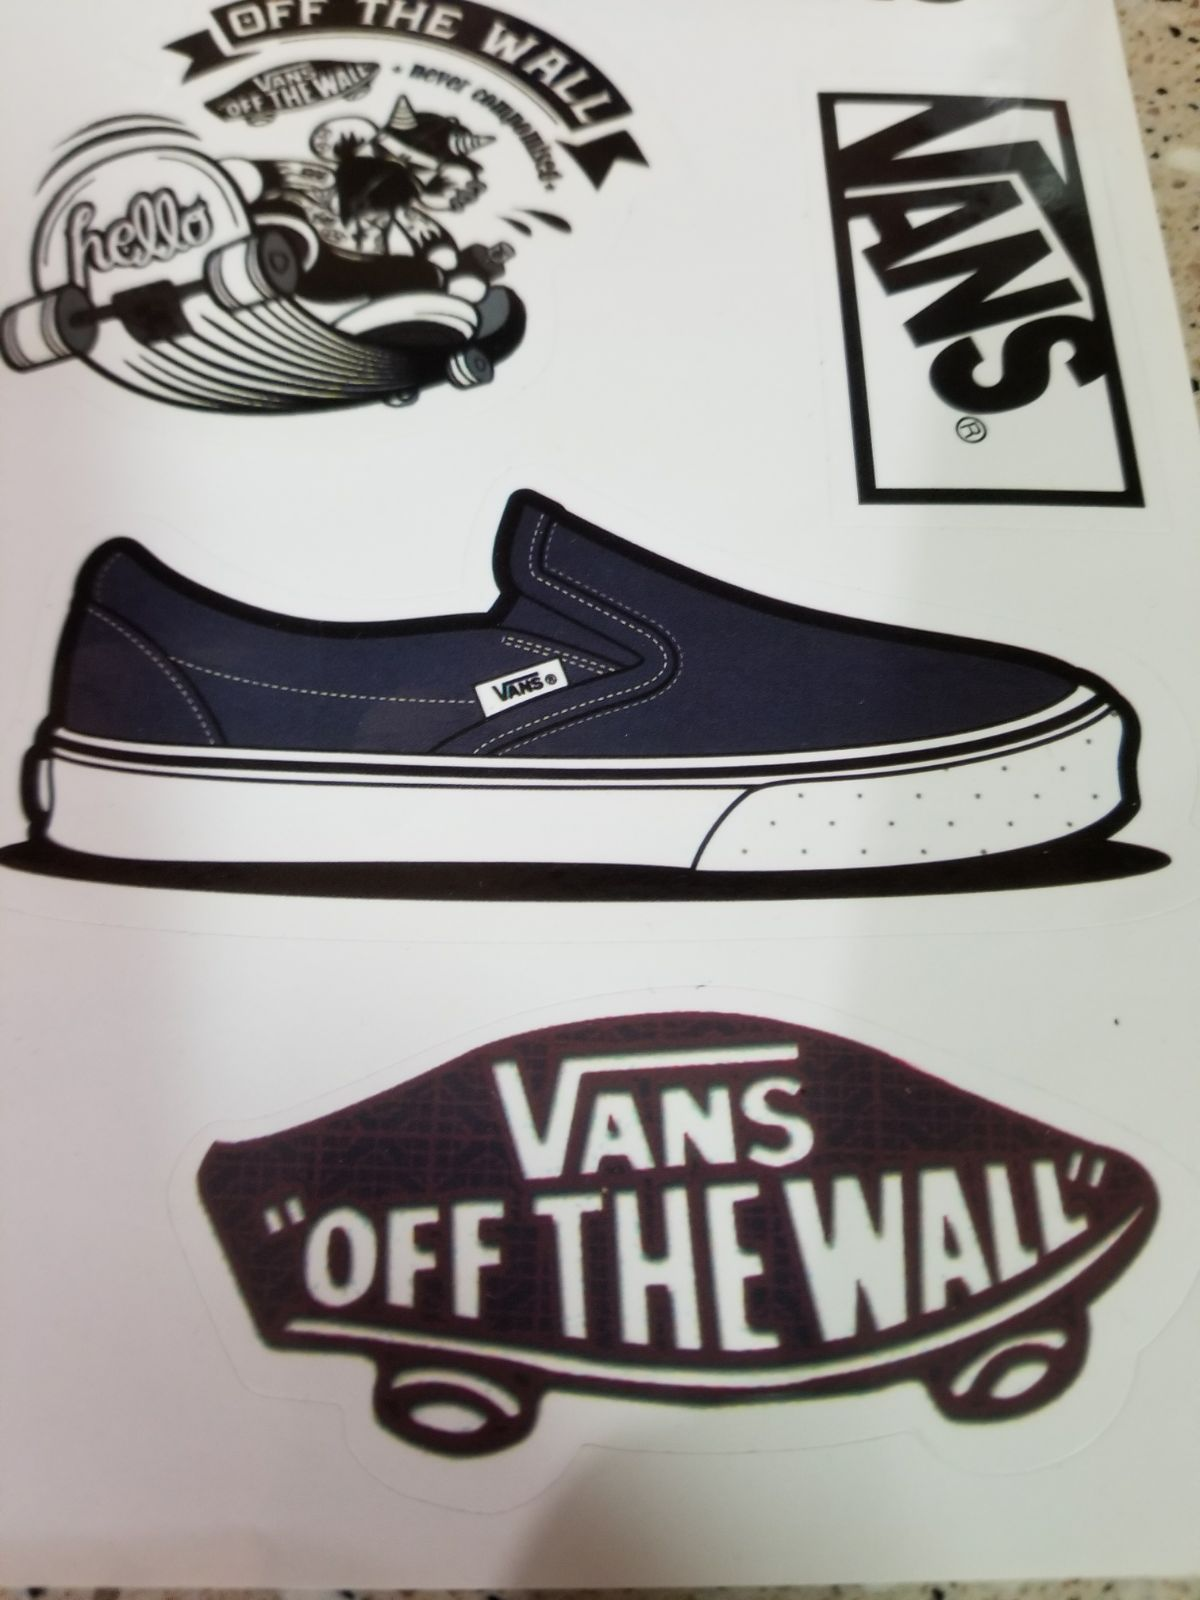 Vans sticker pack mercari buy sell things you love vans sticker pack amipublicfo Choice Image